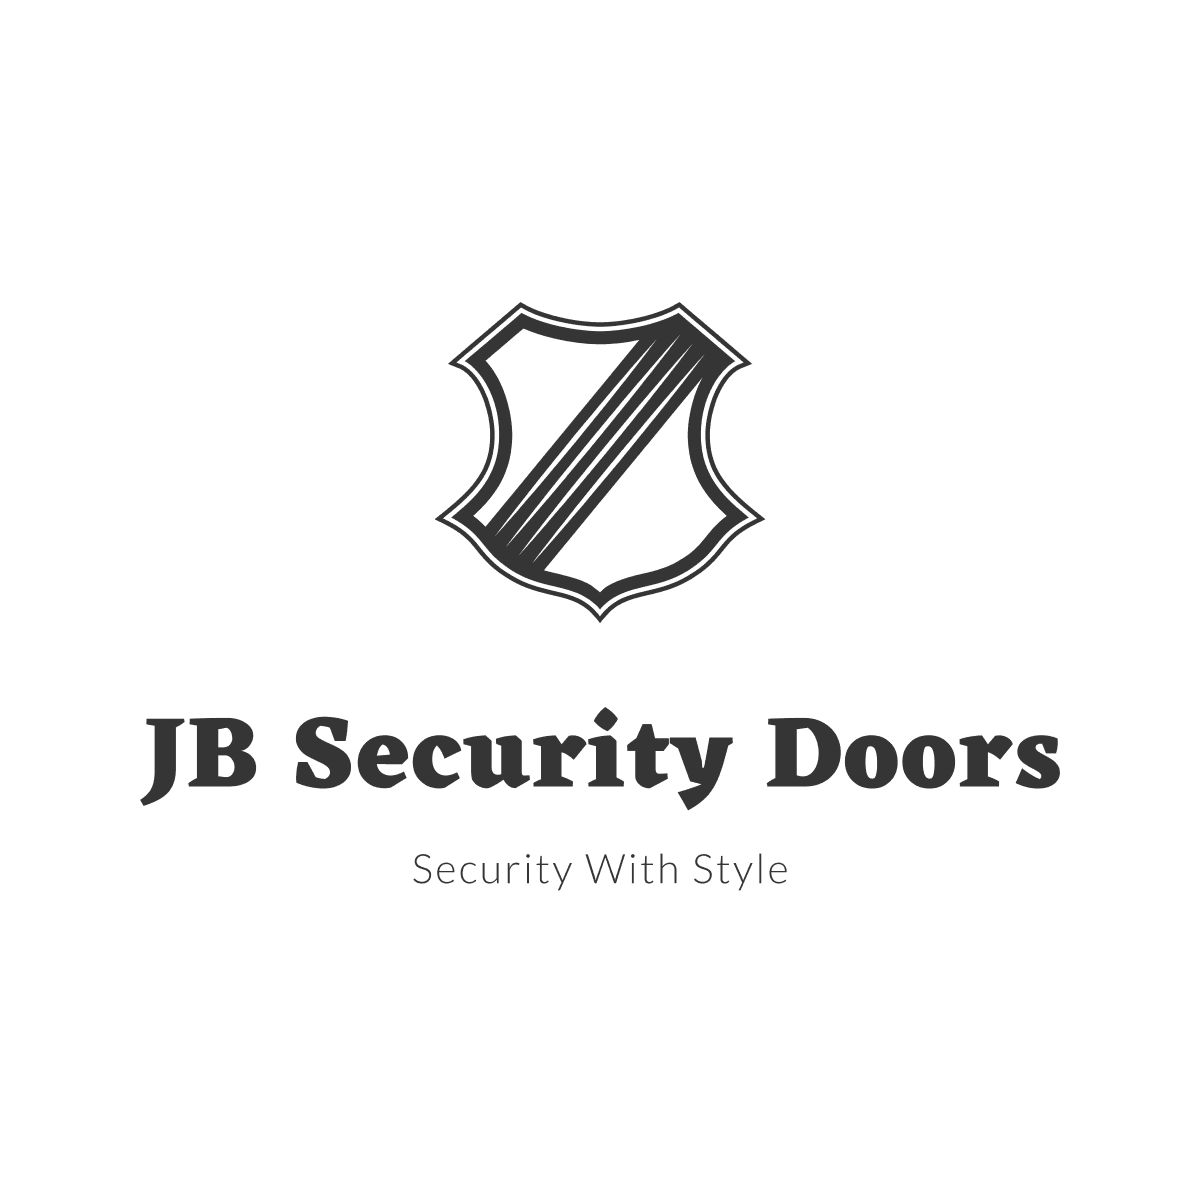 JB Security Doors - Newhaven, East Sussex  BN9 0BY - 08004 337961 | ShowMeLocal.com